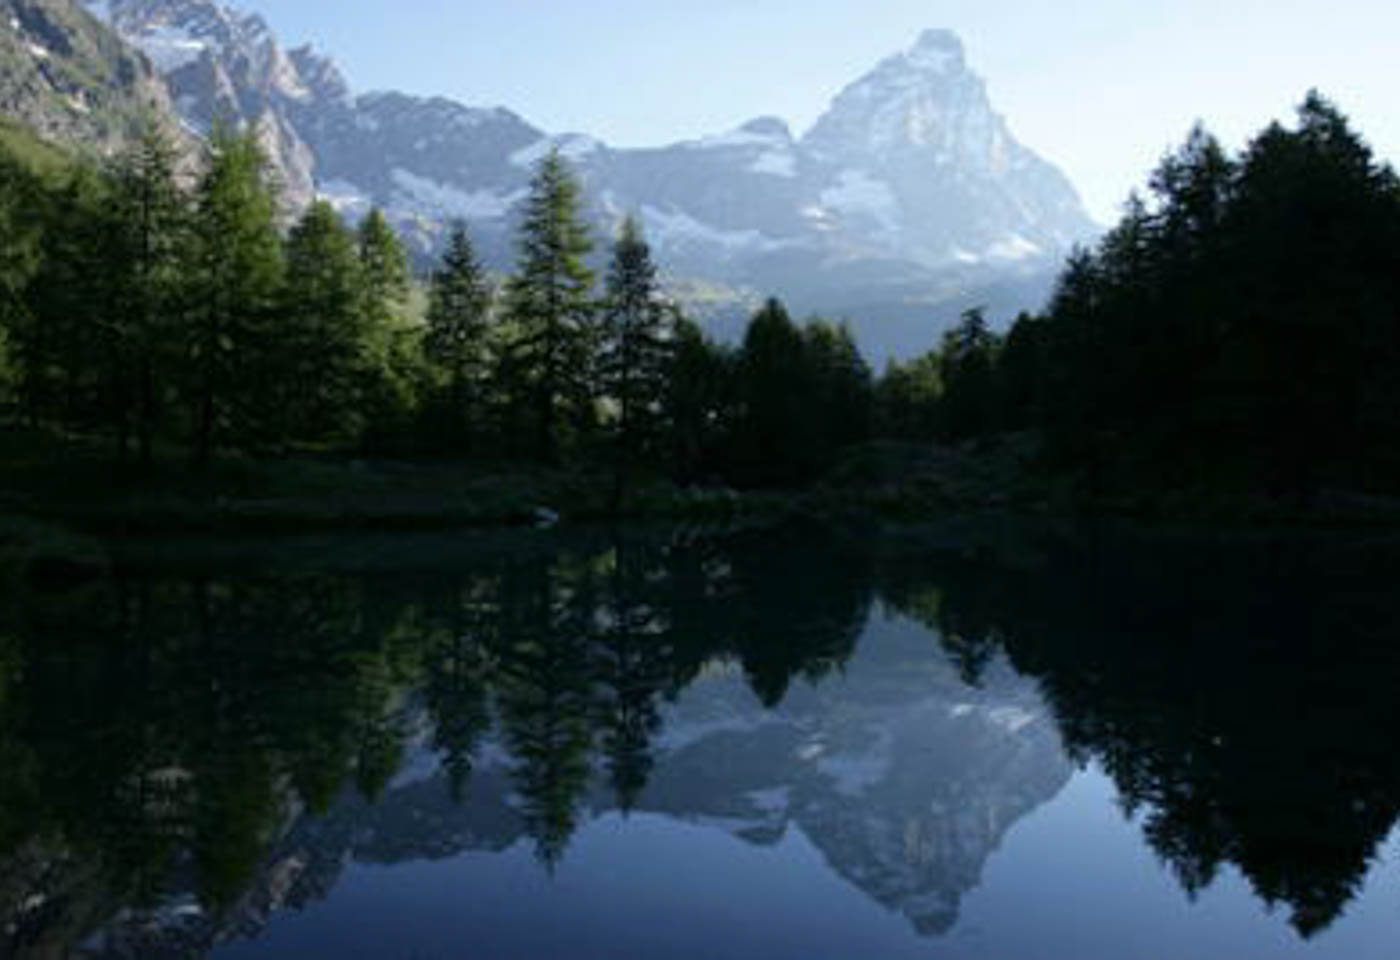 Reflection of a mountain and trees in lake